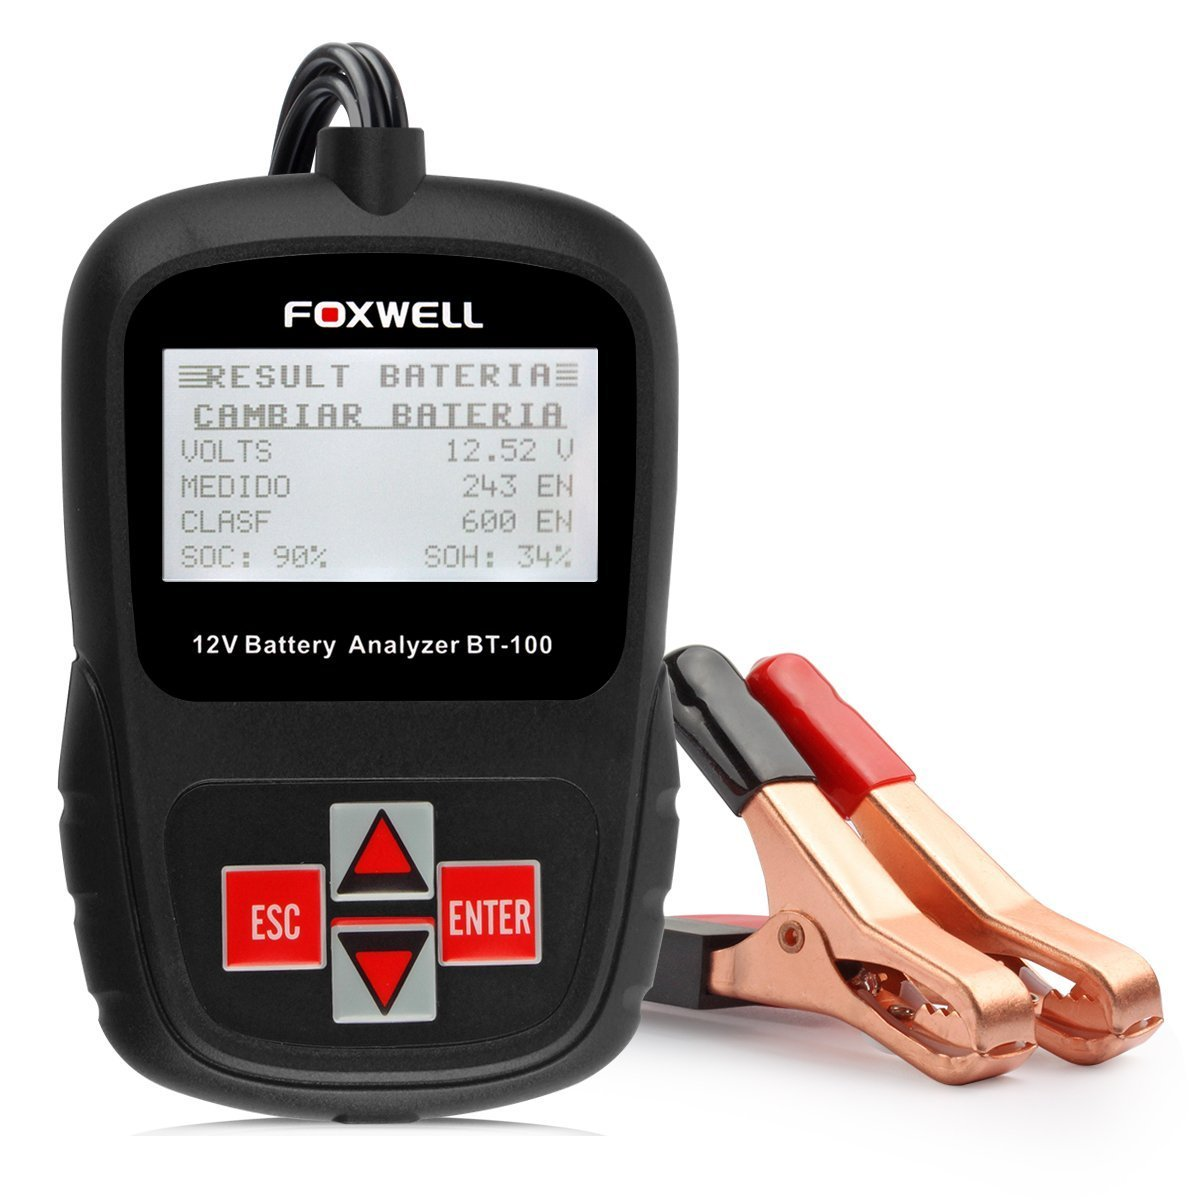 FOXWELL BT100 12 Volt Car Battery Tester 100-1100 Cold Cranking Amps Check Battery Life Health Directly Detect Bad Cell Battery Analyser